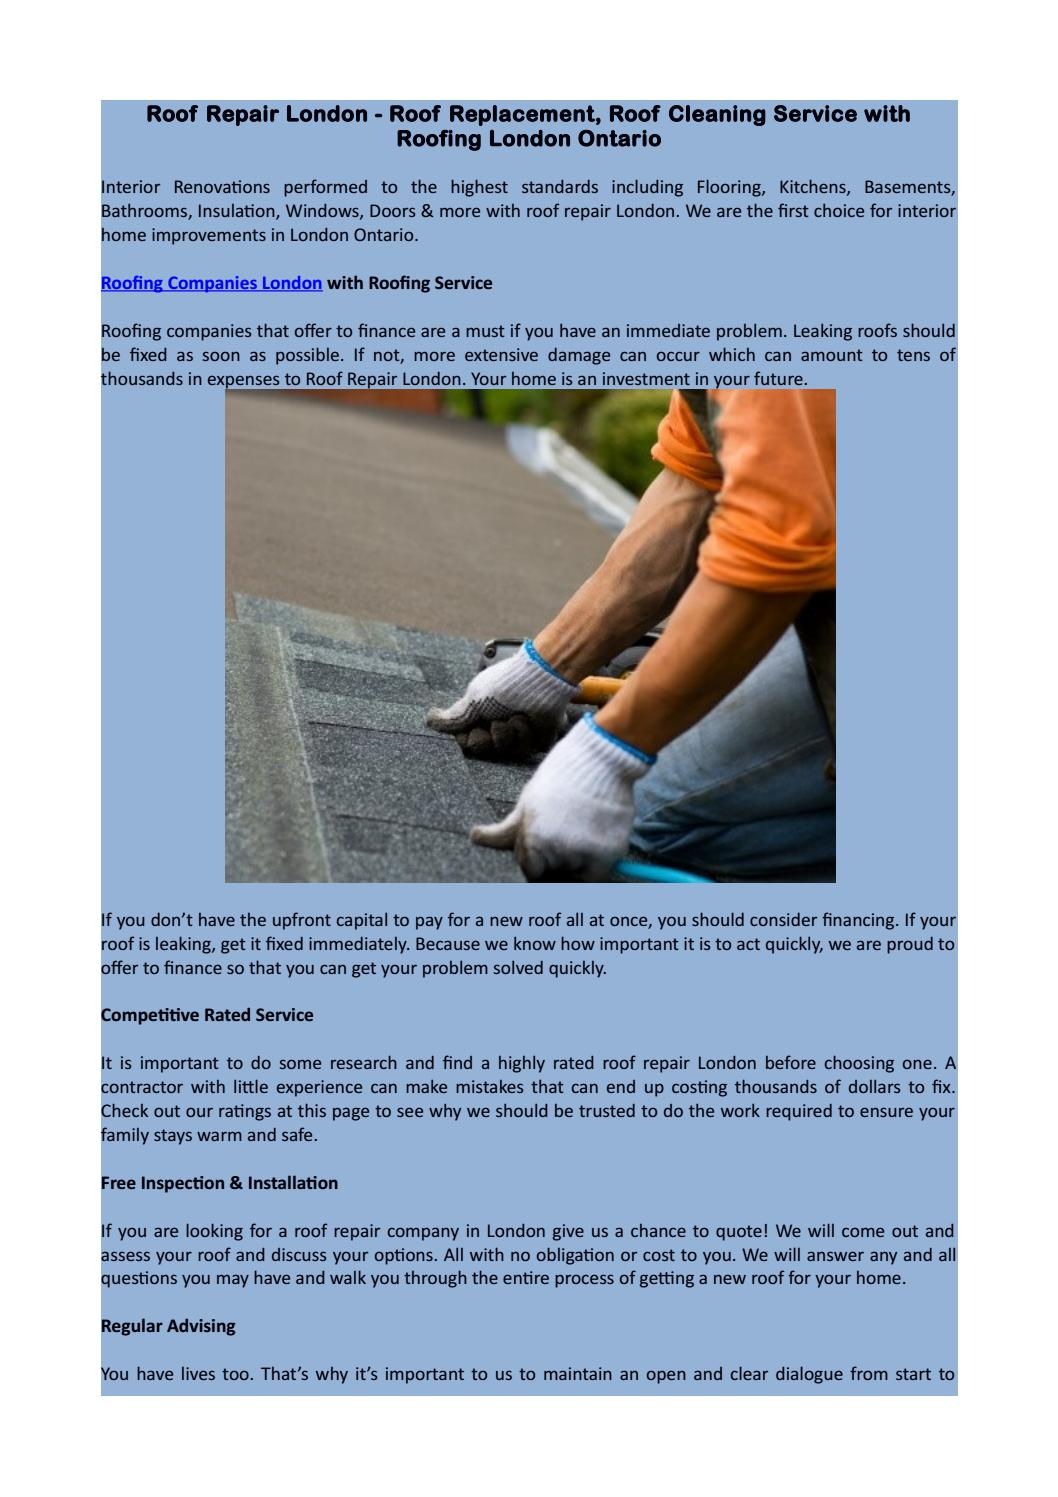 Roof Repair London Roof Replacement Roof Cleaning